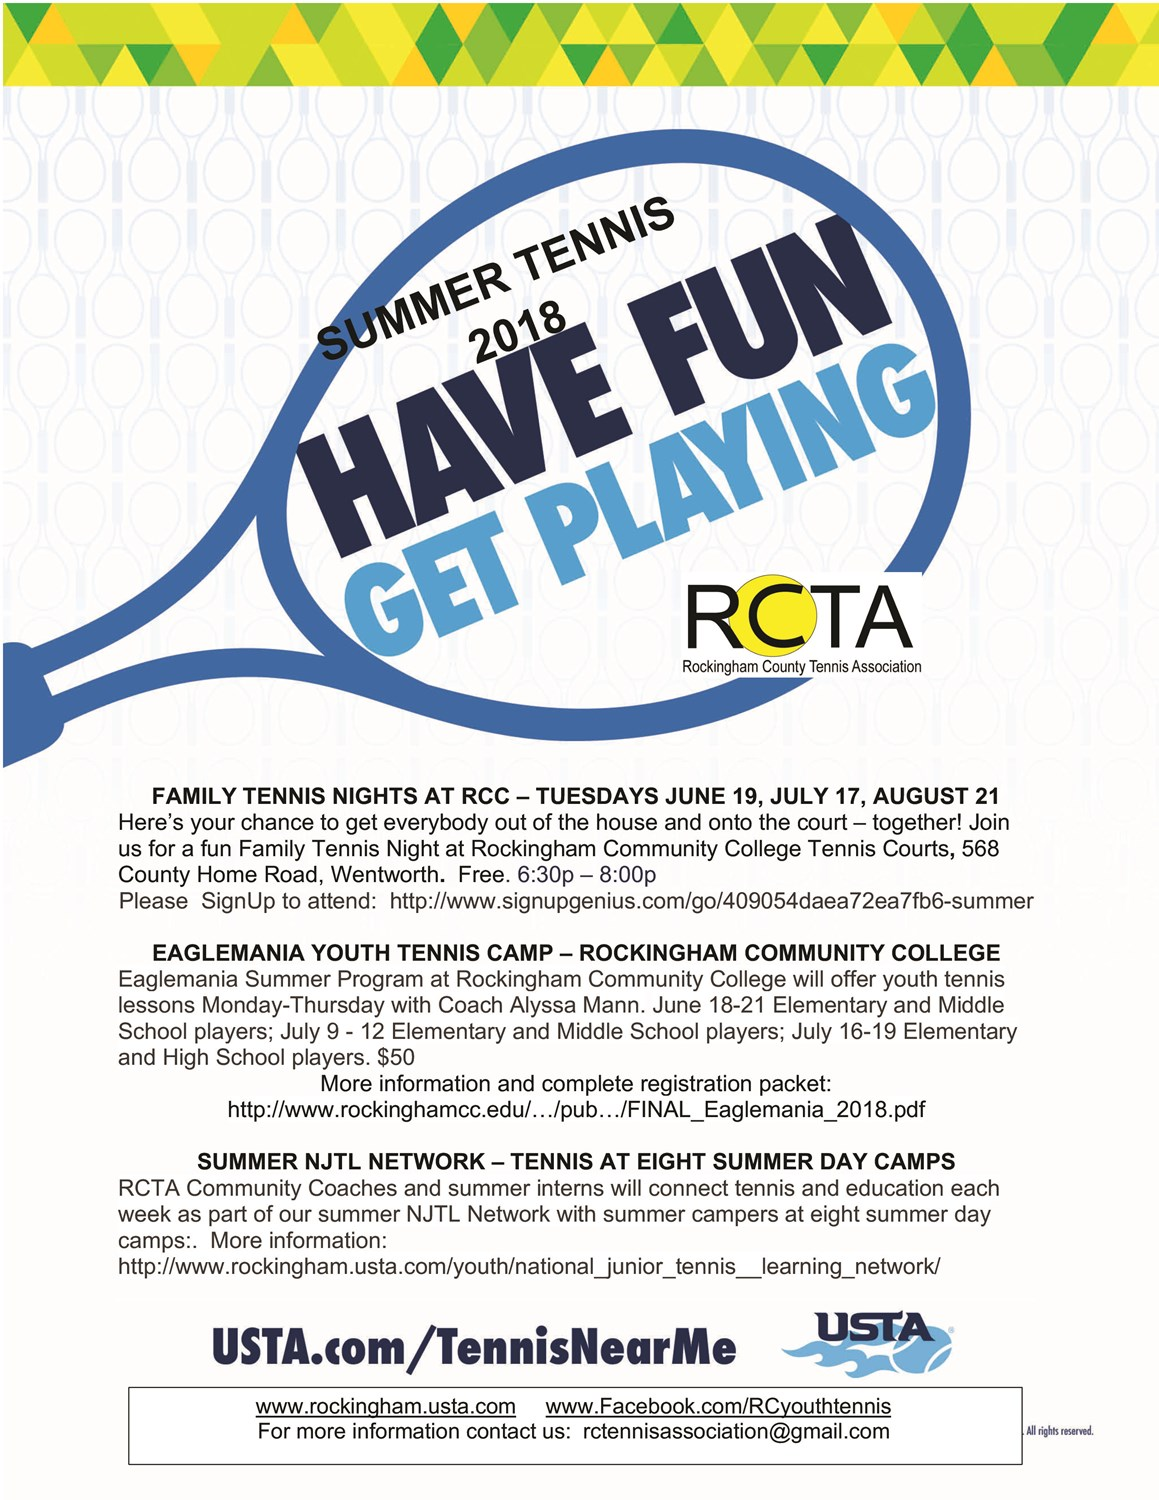 RC_Tennis_SUMMER_2018_Program_flyer-page-0